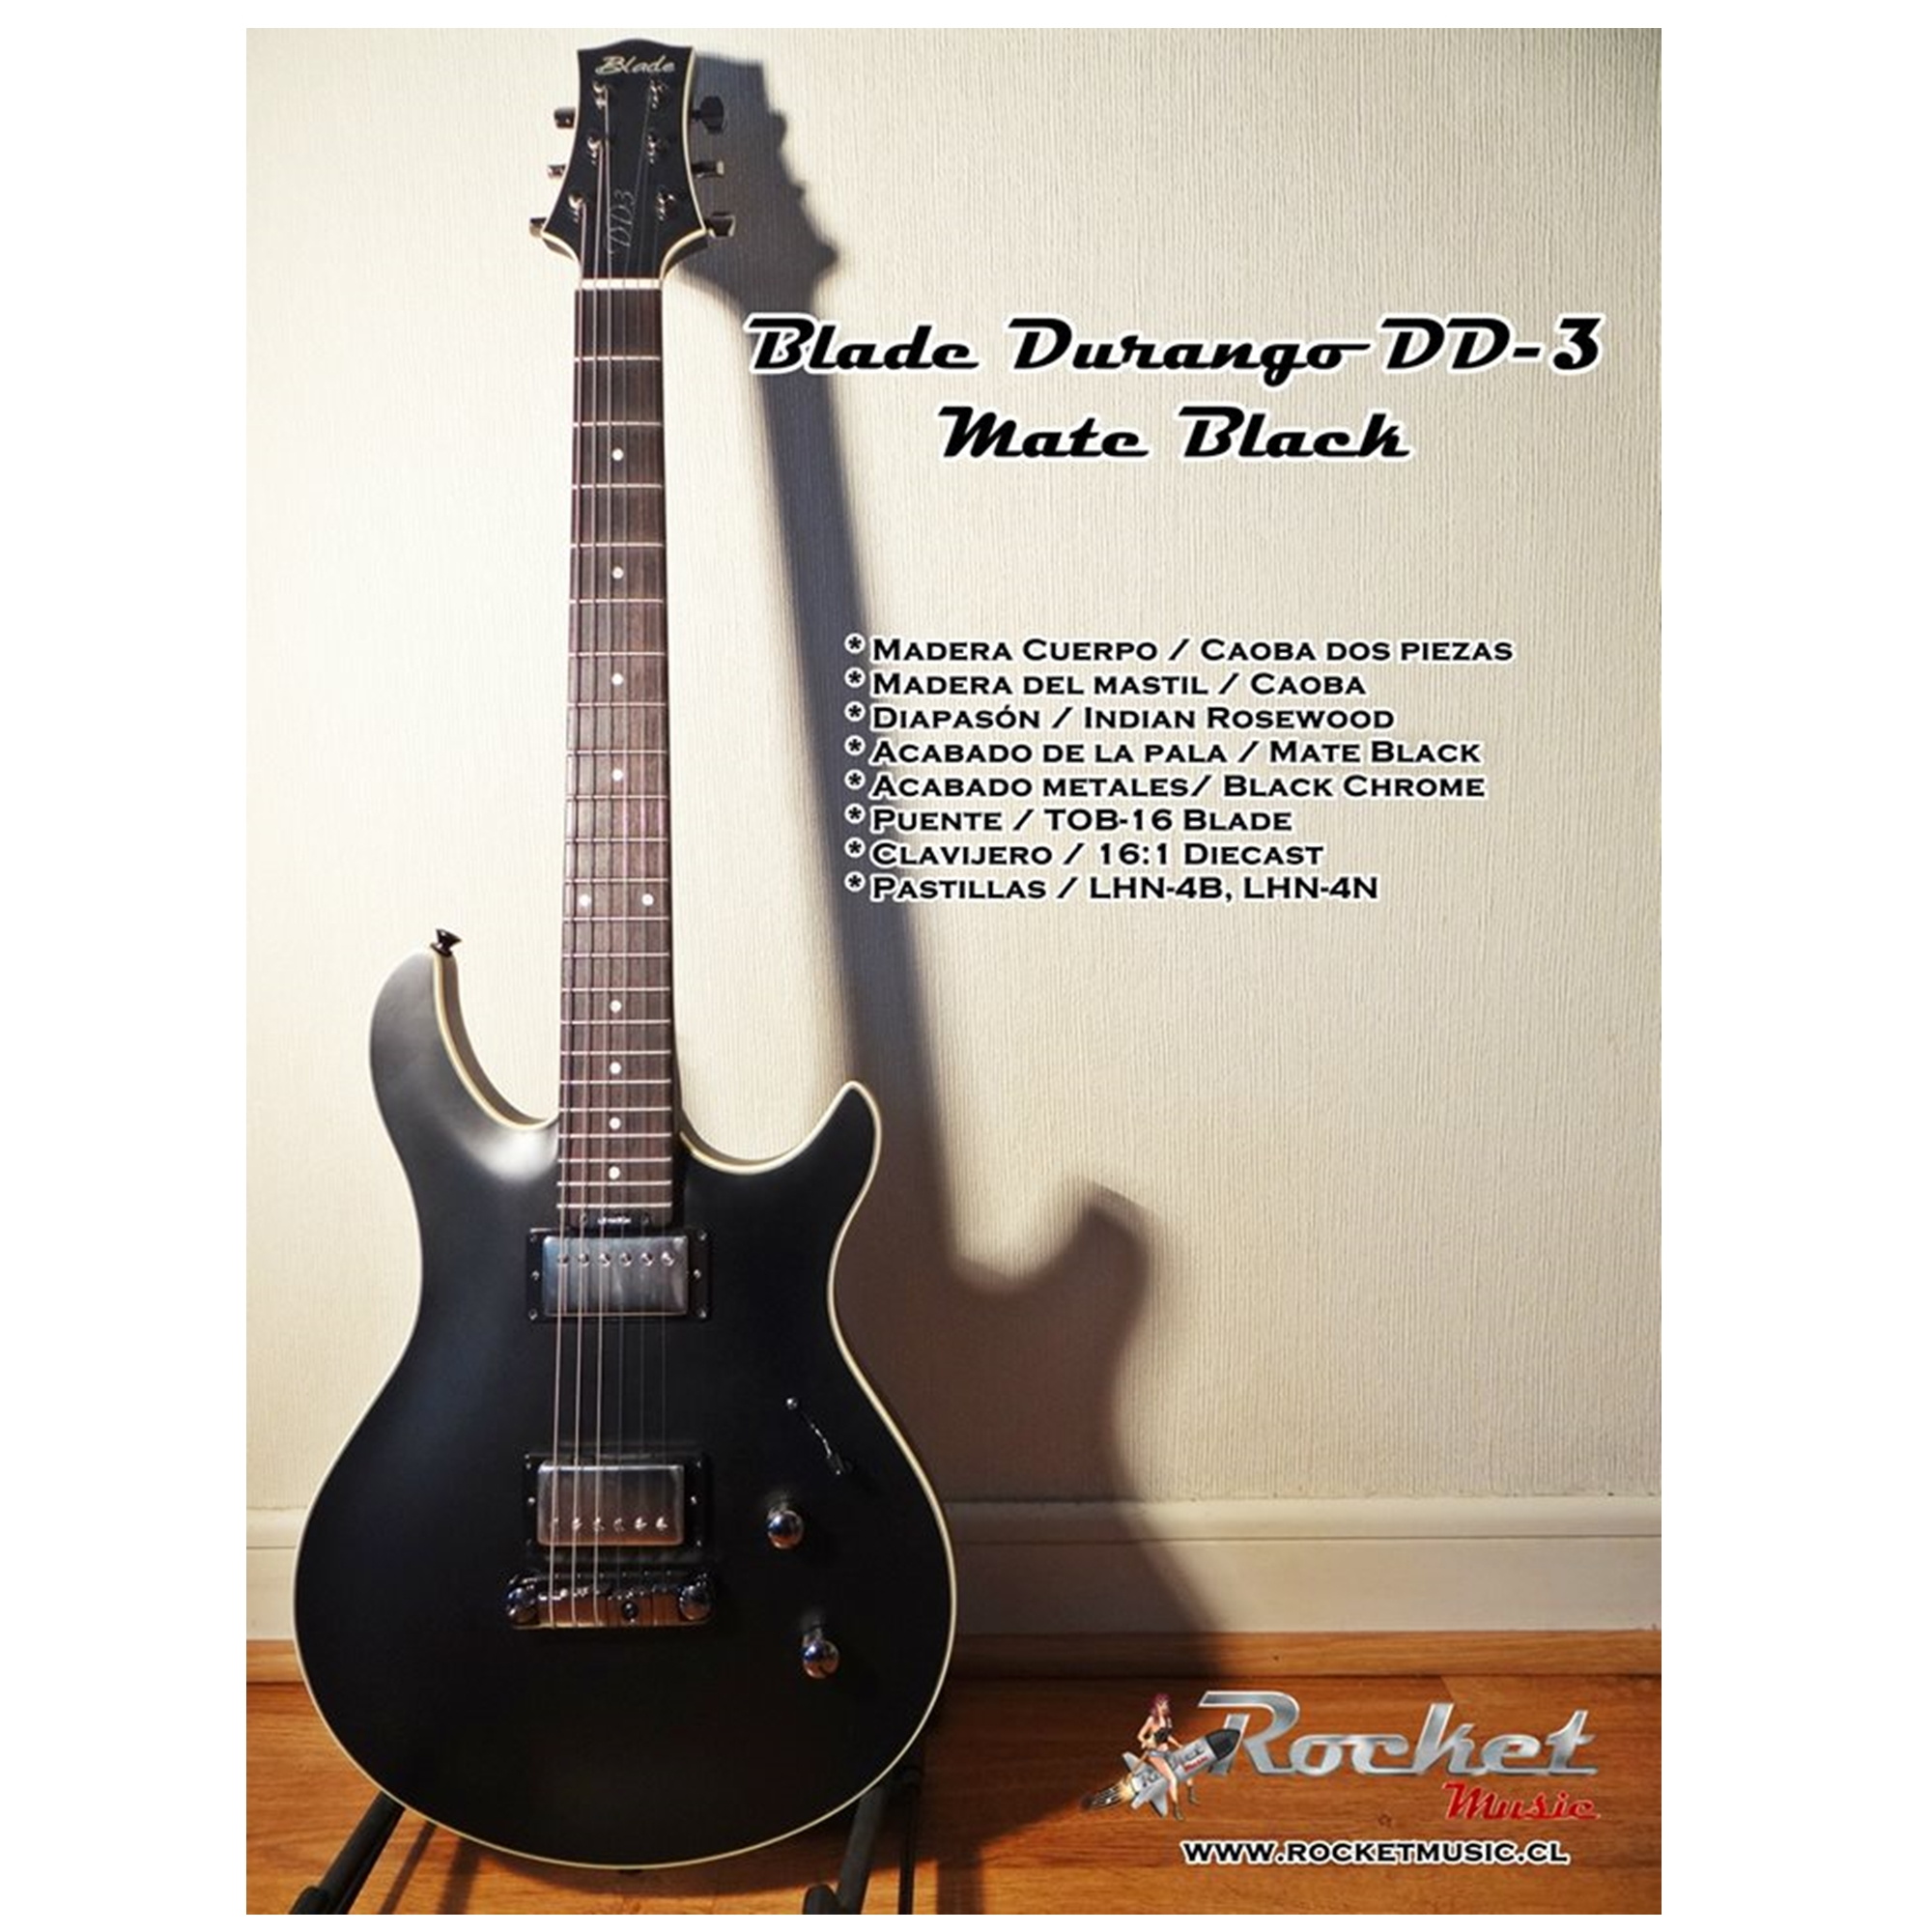 Blade Durango DD3 / Open Pore Black